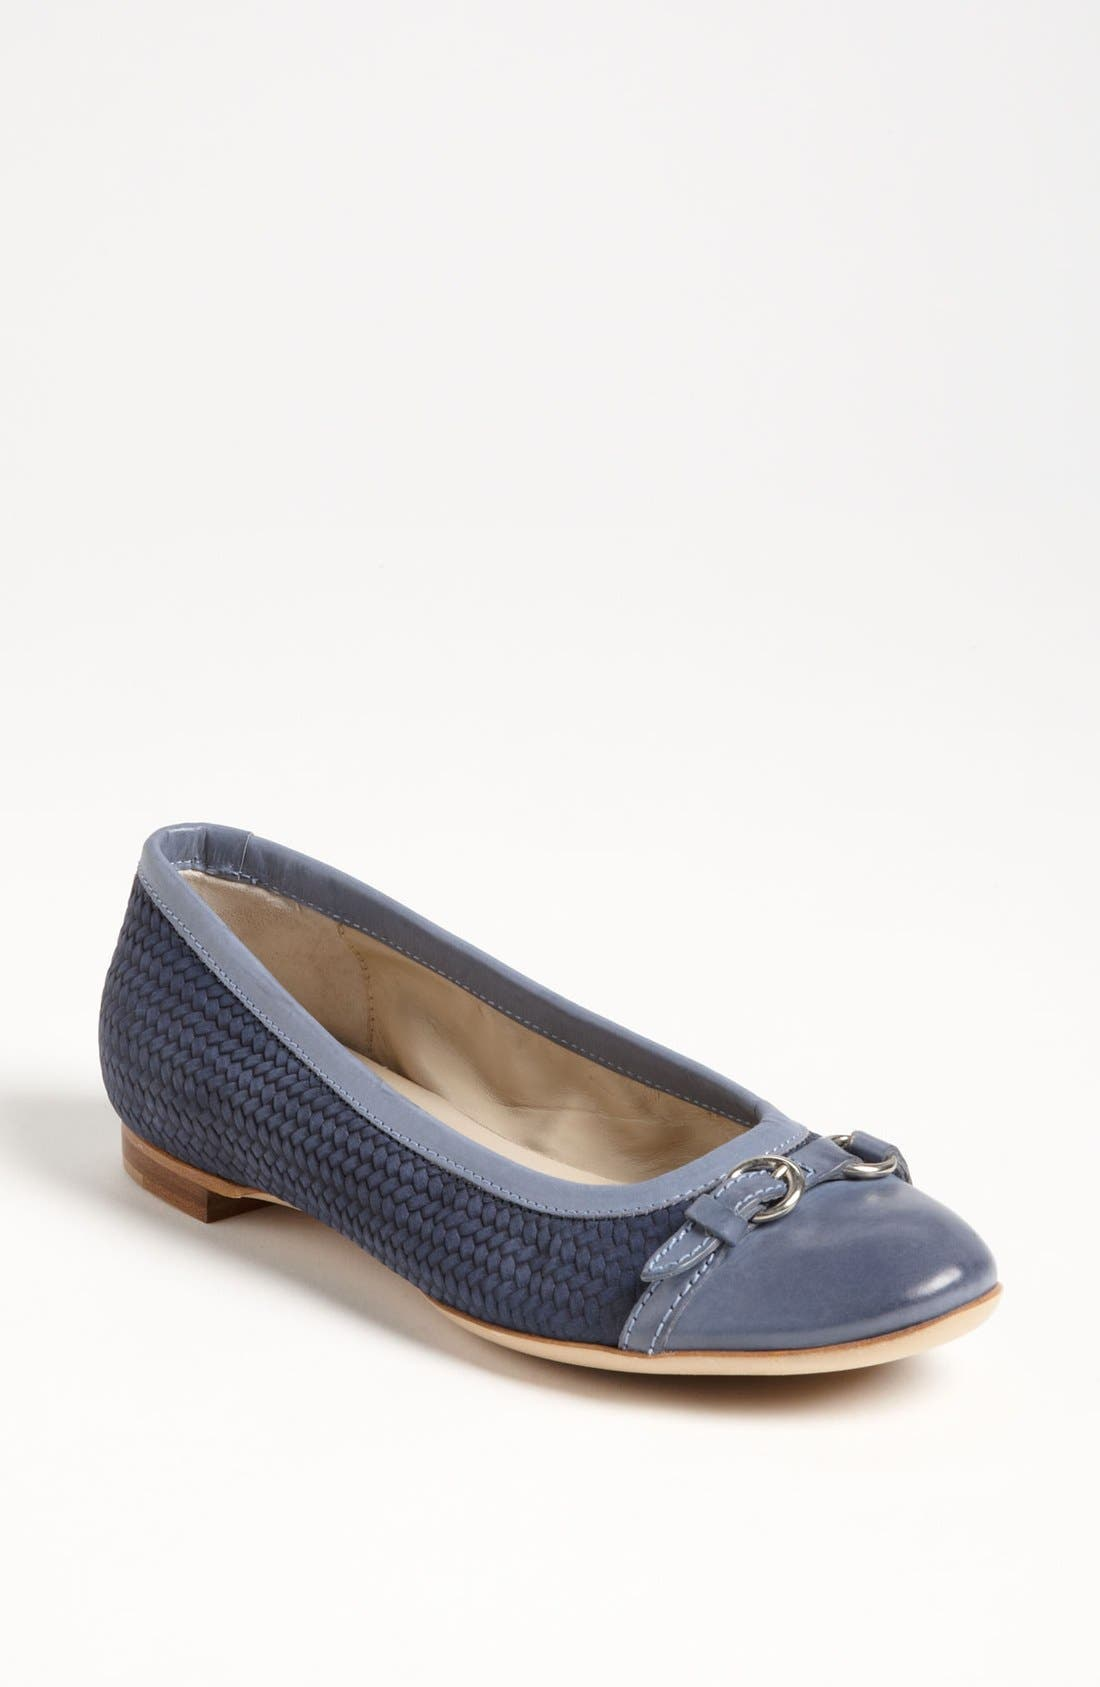 Alternate Image 1 Selected - Attilio Giusti Leombruni Weave Toe Cap Ballet Flat